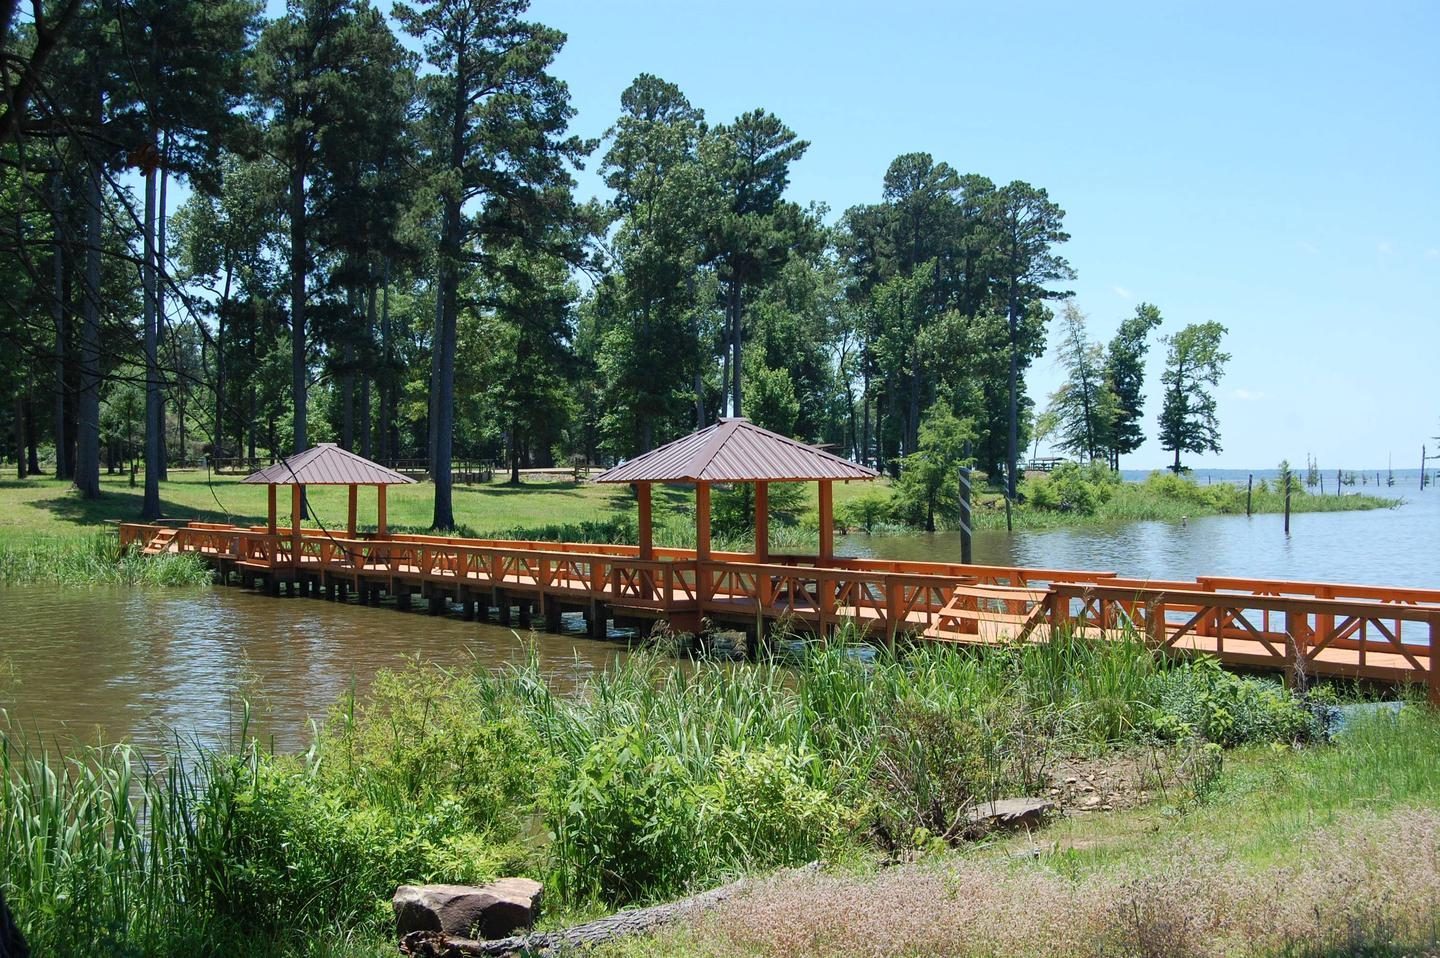 COTTONSHED PARK FISHING PIER